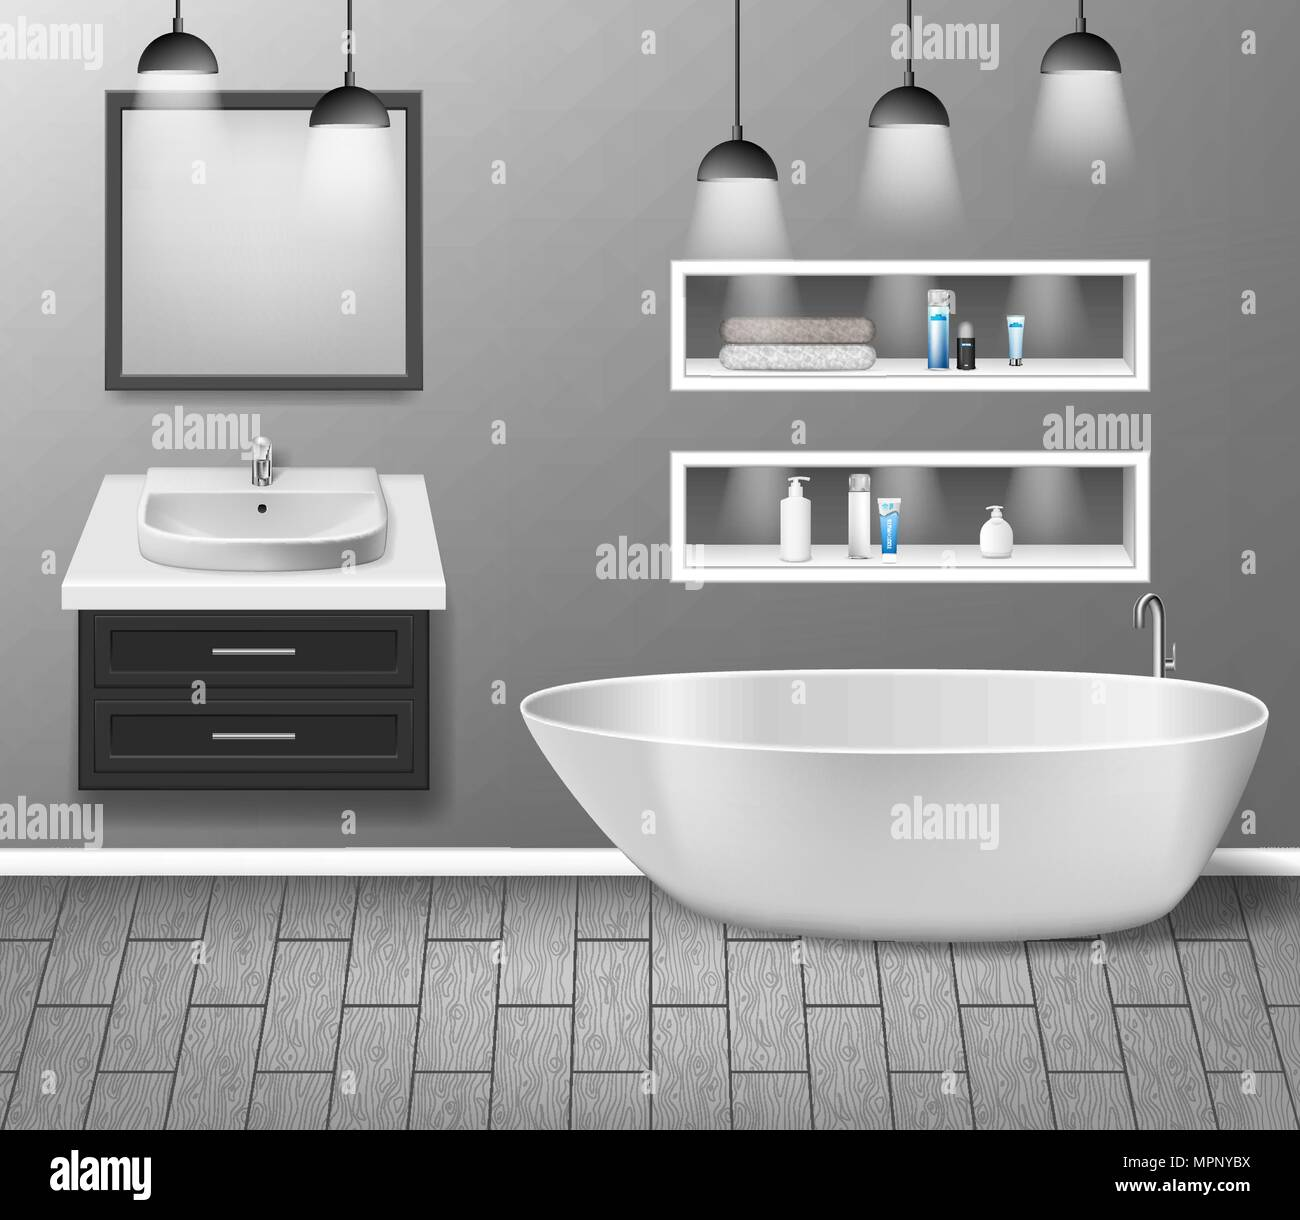 Realistic bathroom furniture interior with modern bathroom sink ...